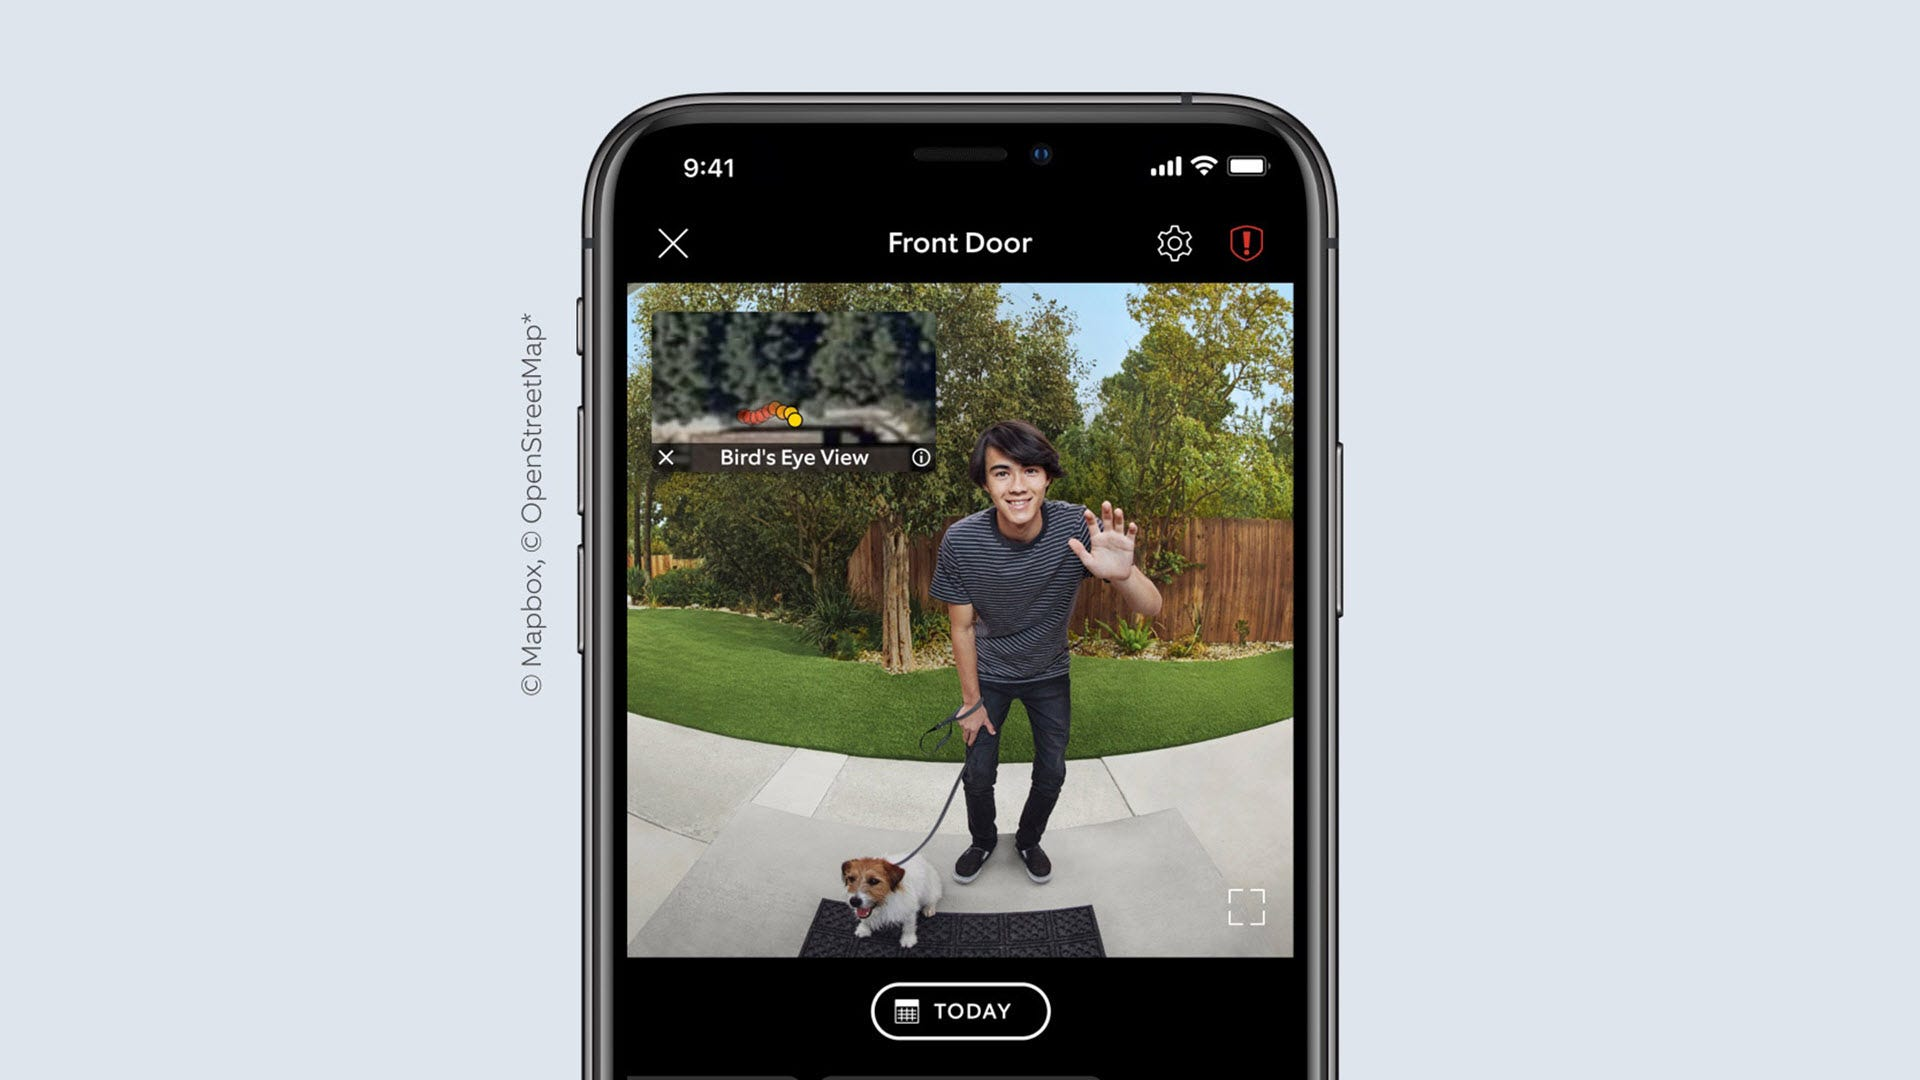 A Ring Video Dorbell app showing a complete view, head to toe, and a bird's eye view of a path walked.